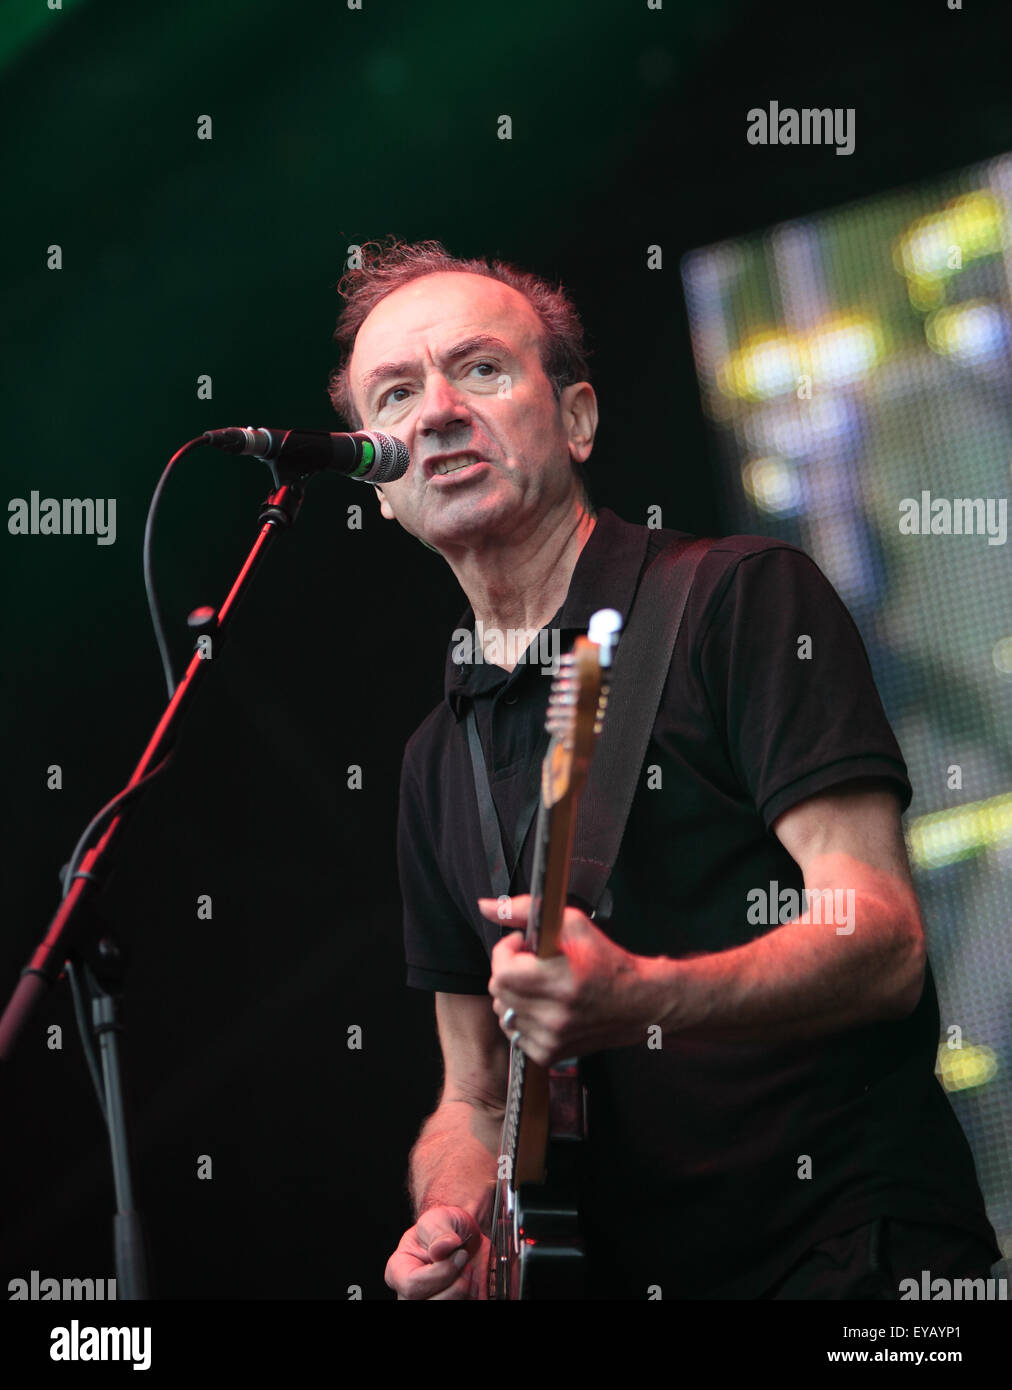 Perth, Scotland, UK. 25th July, 2015. Hugh Cornwell sings at The Rewind Festival Scone Palace Perth,Scotland,UK,Saturday - Stock Image